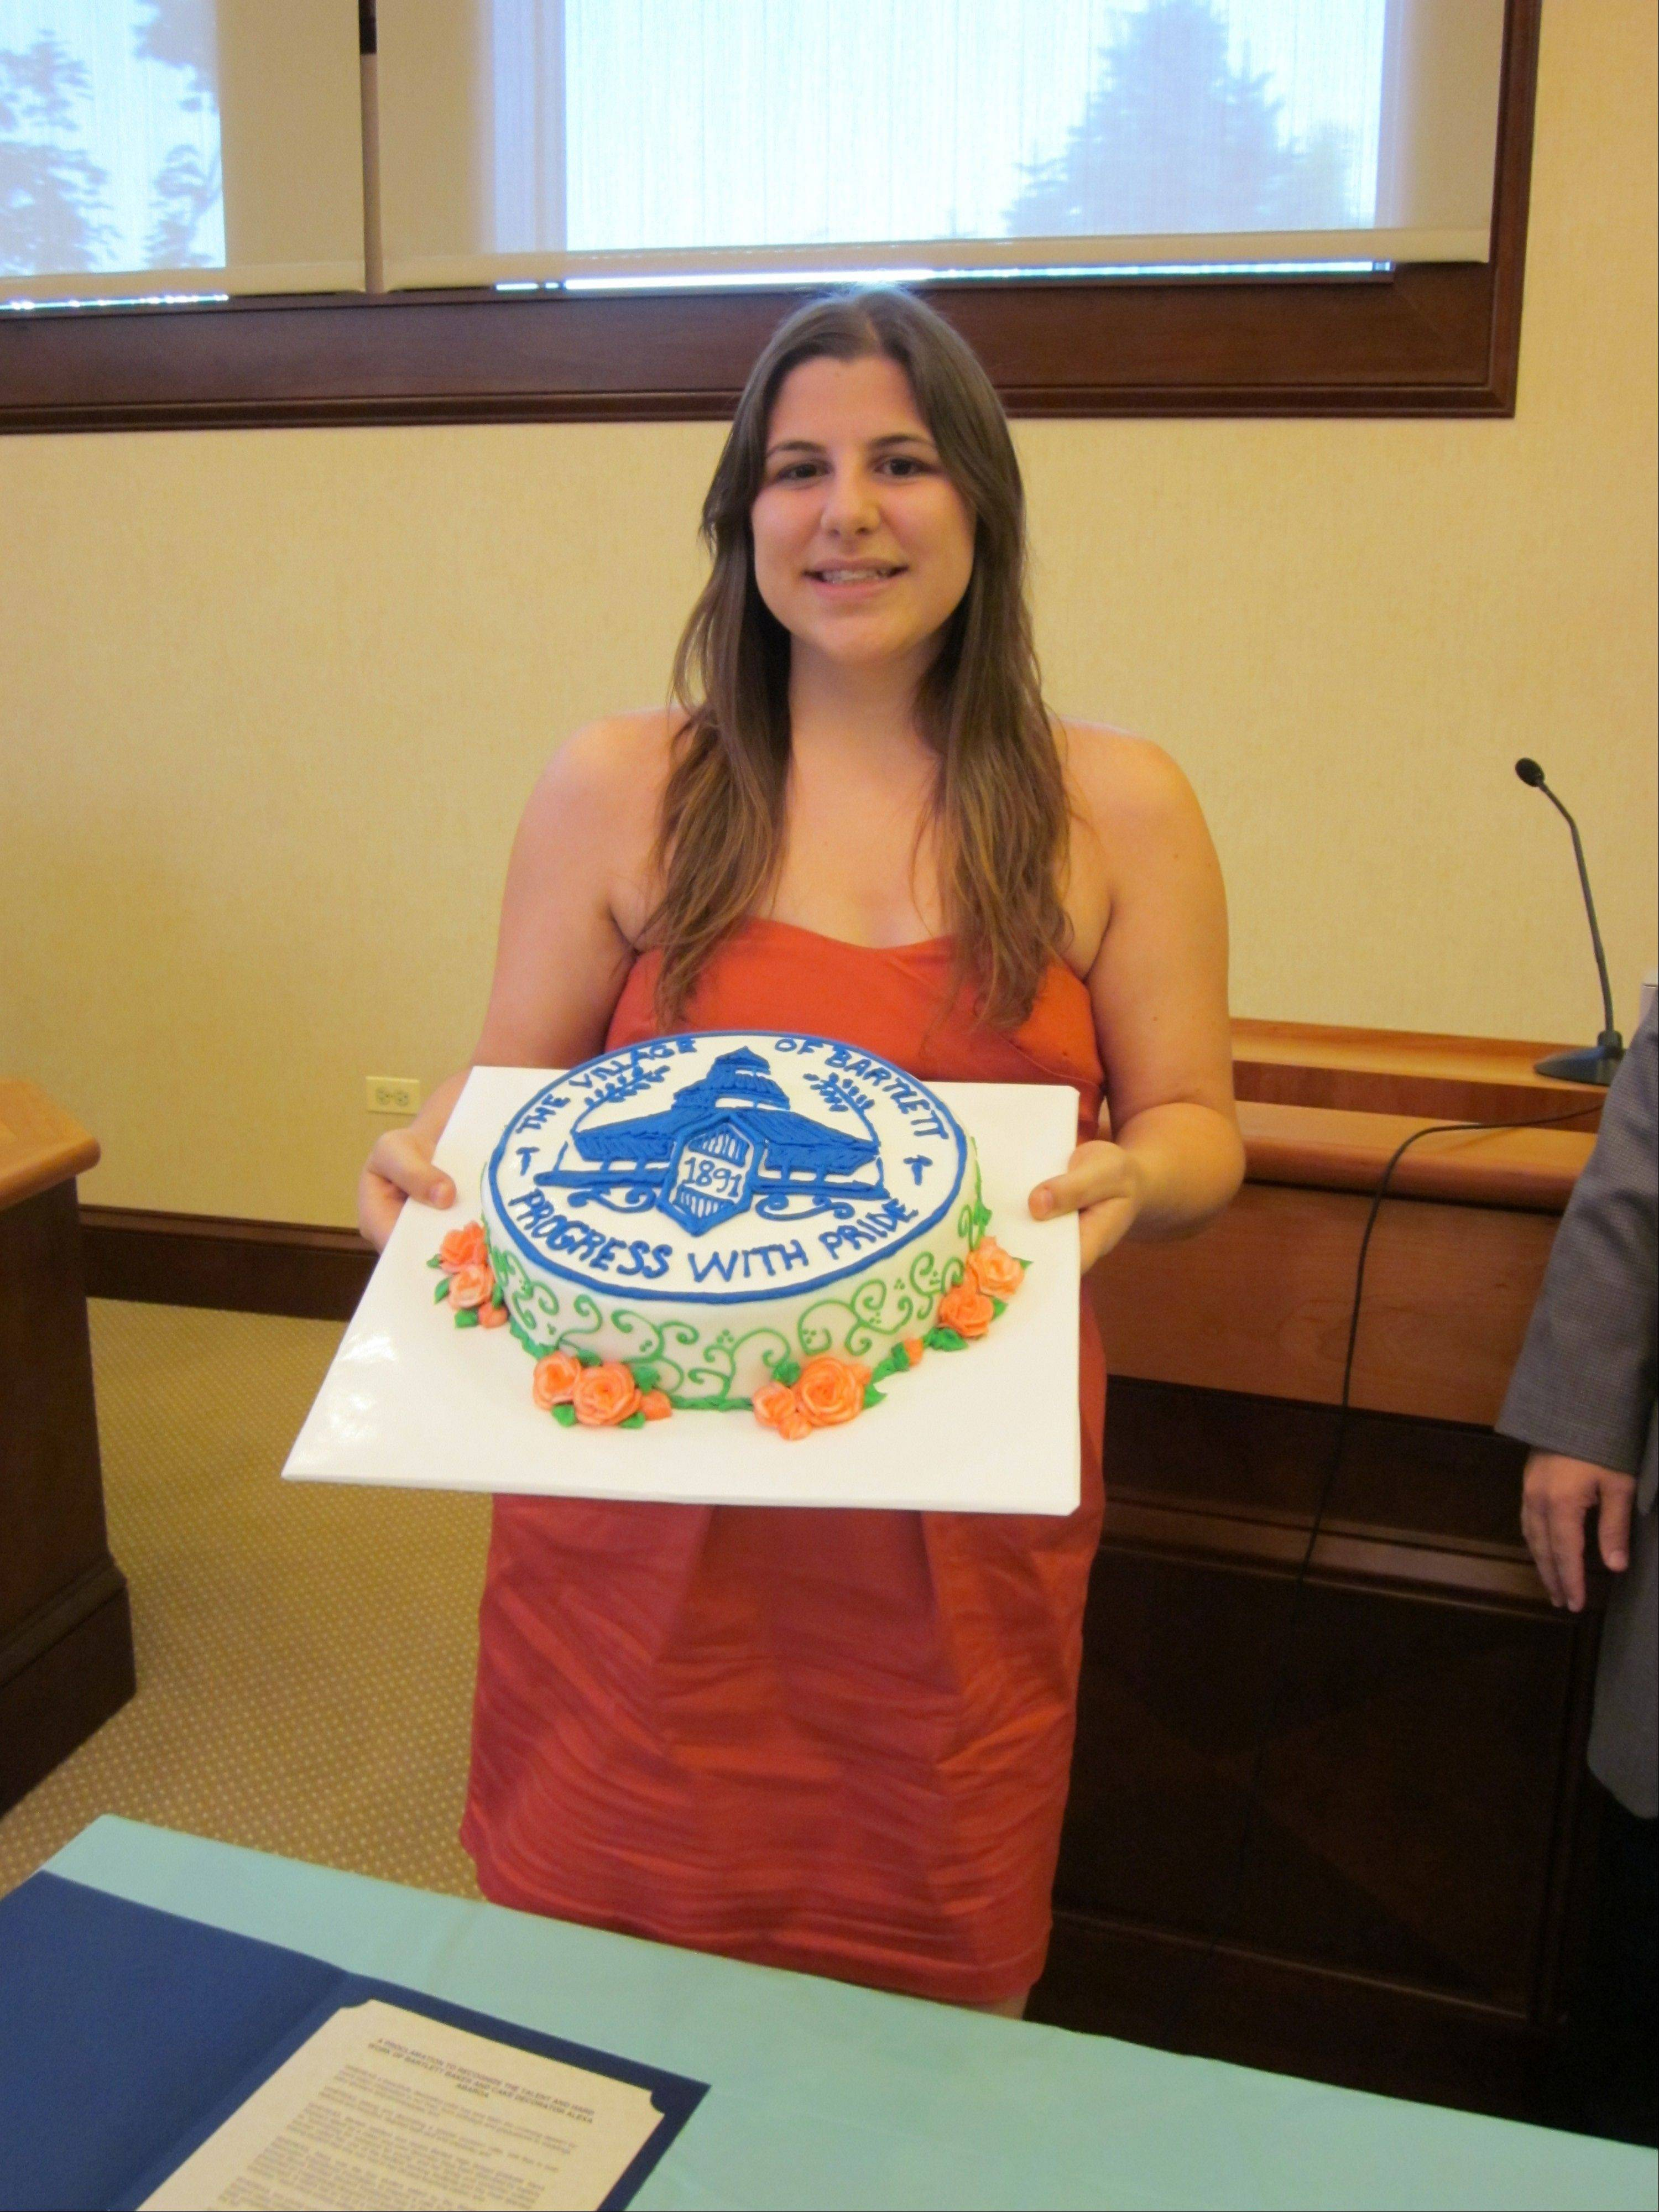 Recent Bartlett High School graduate Alexa Abaroa pictured with a cake she baked that features the Bartlett emblem. Abaroa, who won an $18,000 scholarship to attend Kendall College in the fall, was honored at a Bartlett village board meeting this month.